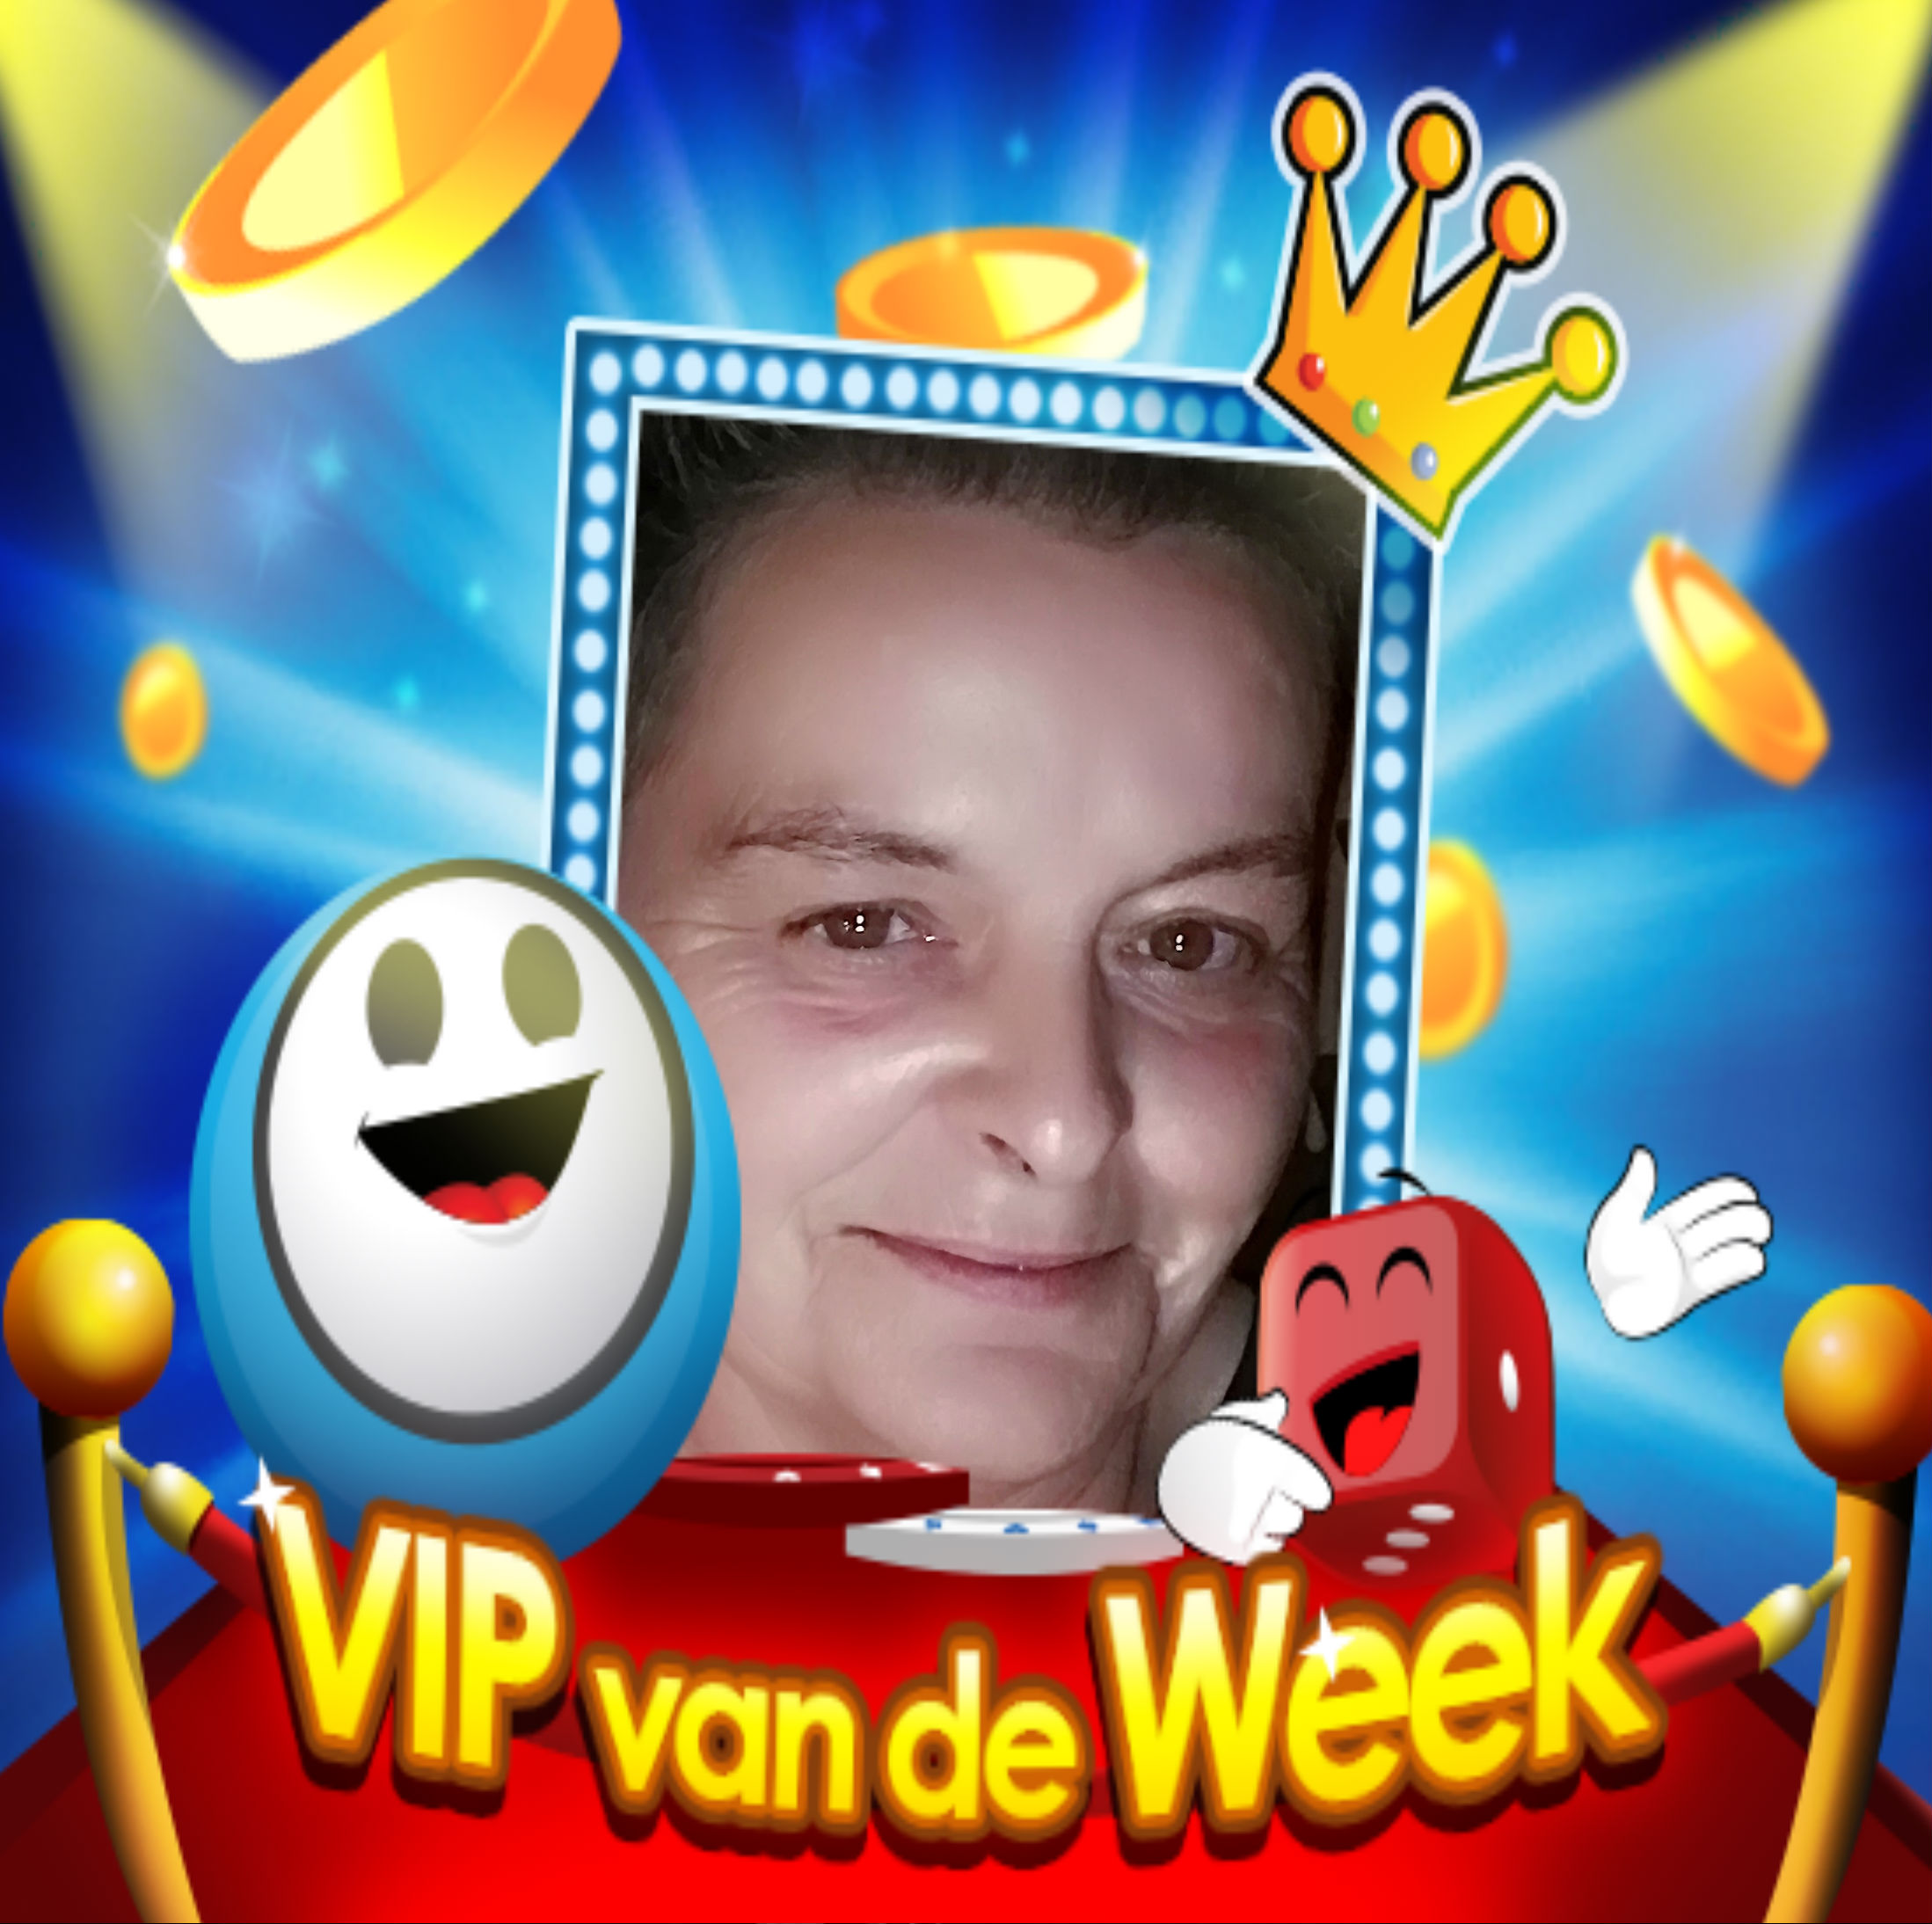 VIP van de Week: black_joker1990